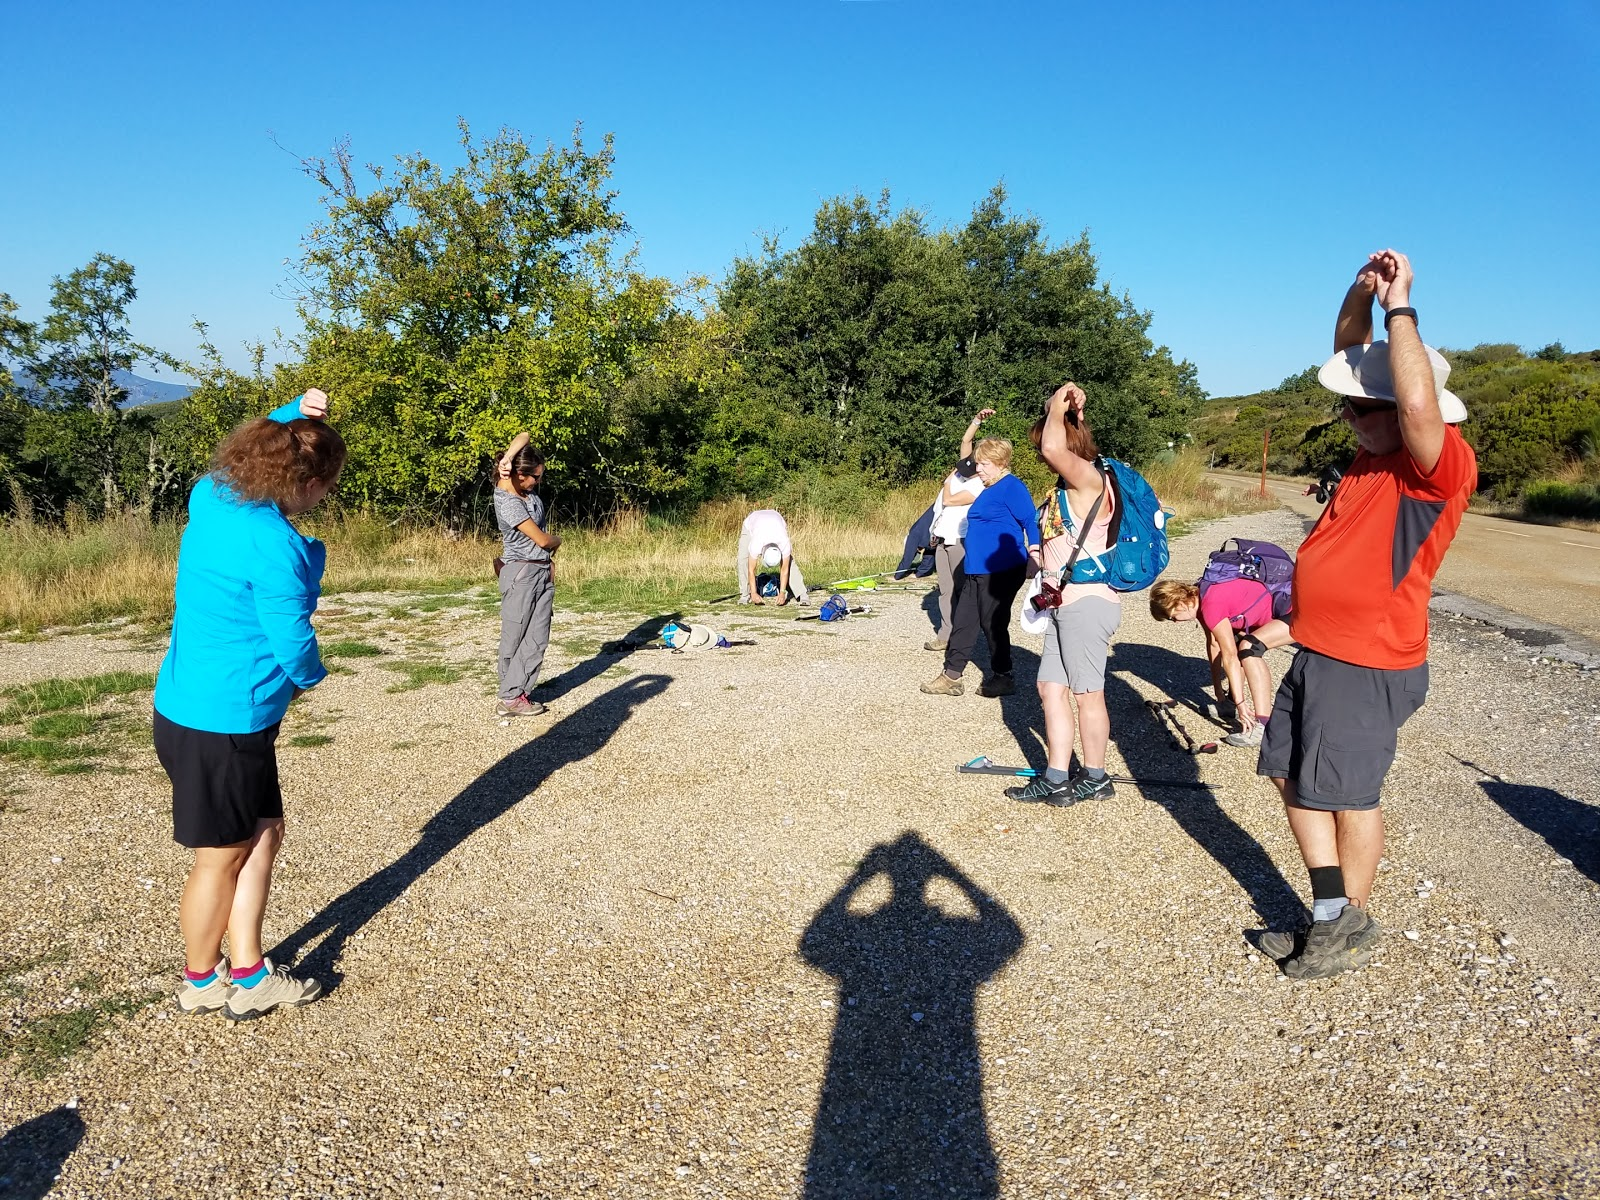 Before each day's hike, we began with morning stretches to tone the muscles. Then we were off!